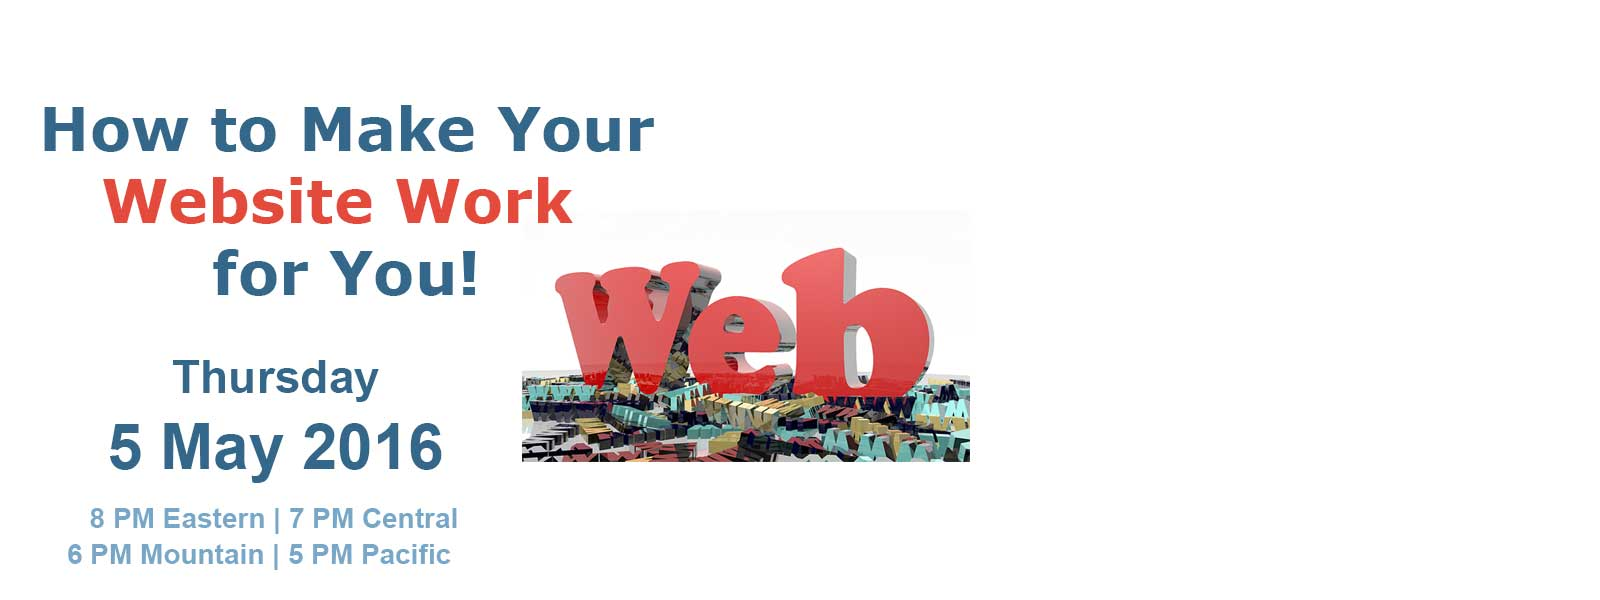 How to Make Your Website Work for You